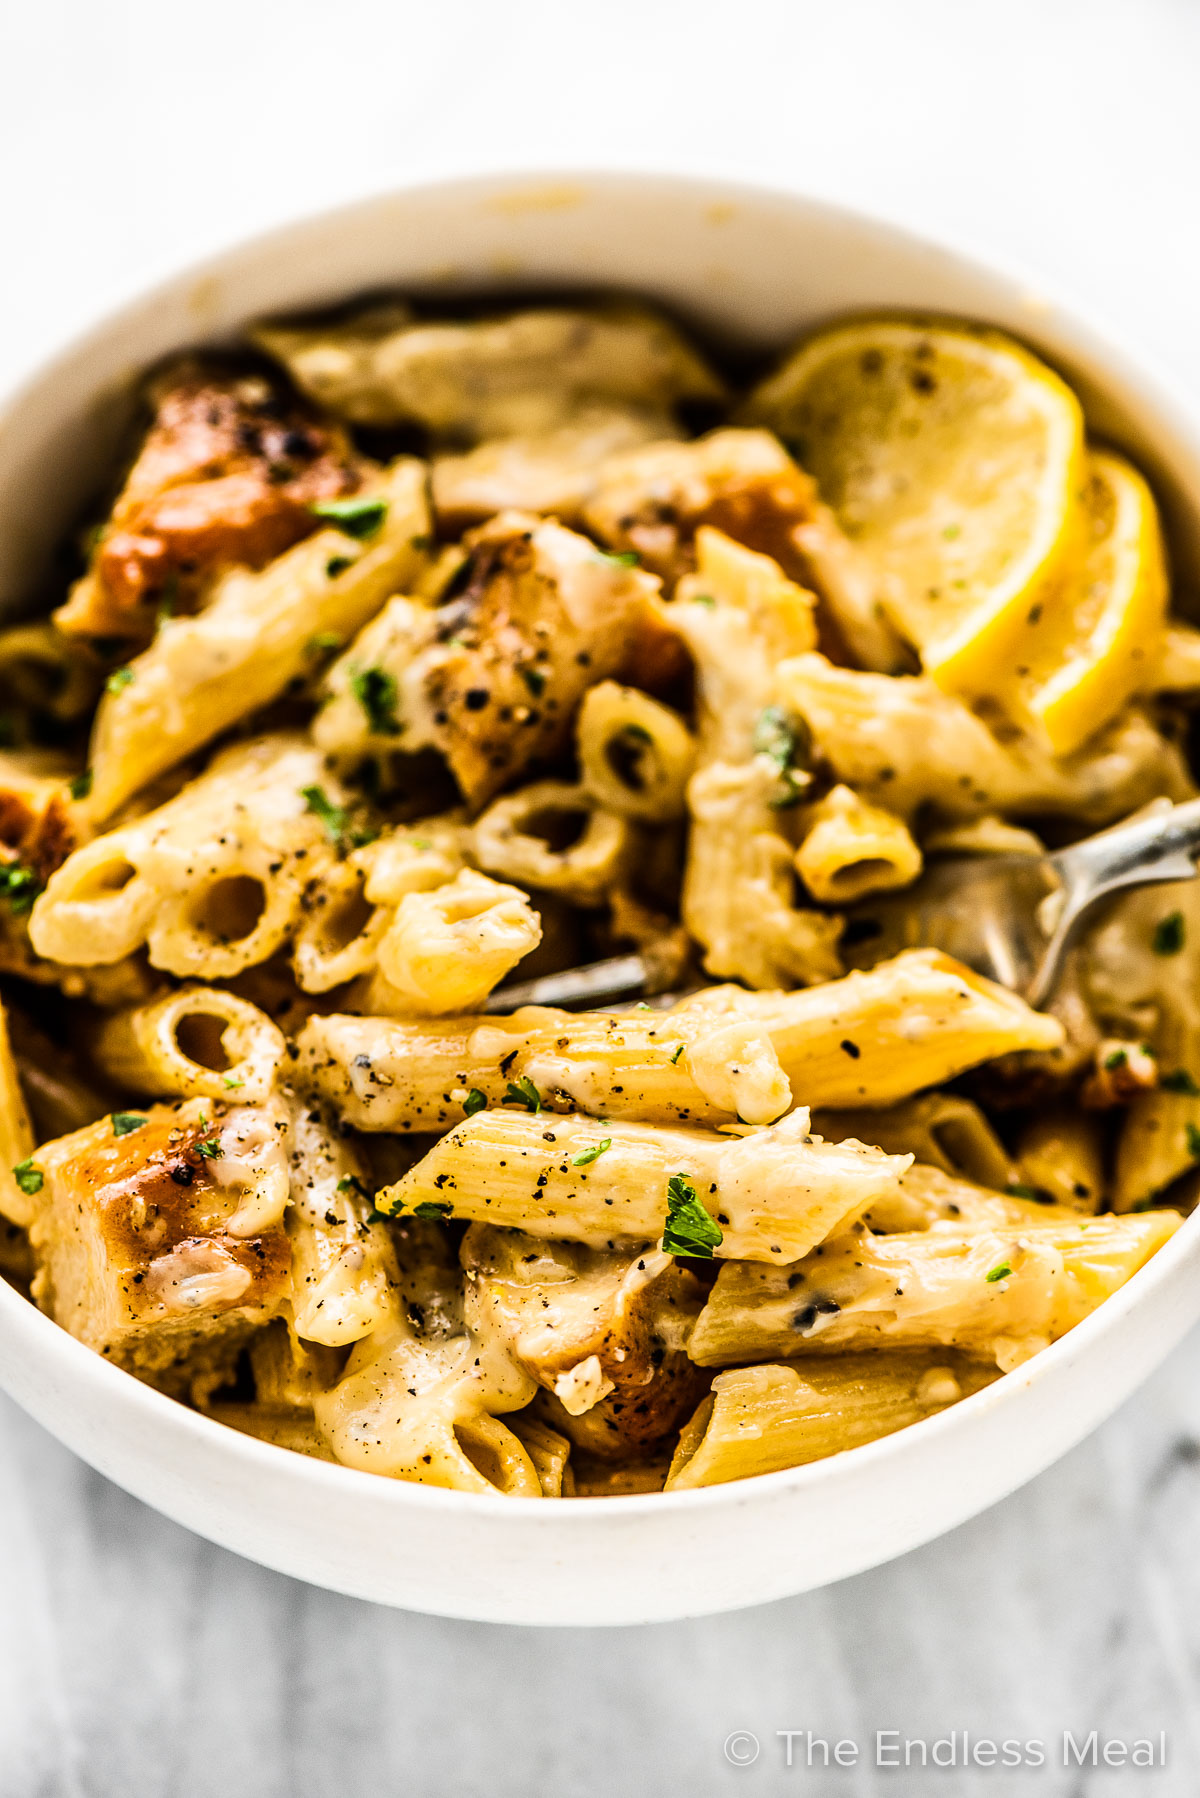 Lemon chicken pasta in a bowl with a fork and lemon slices.